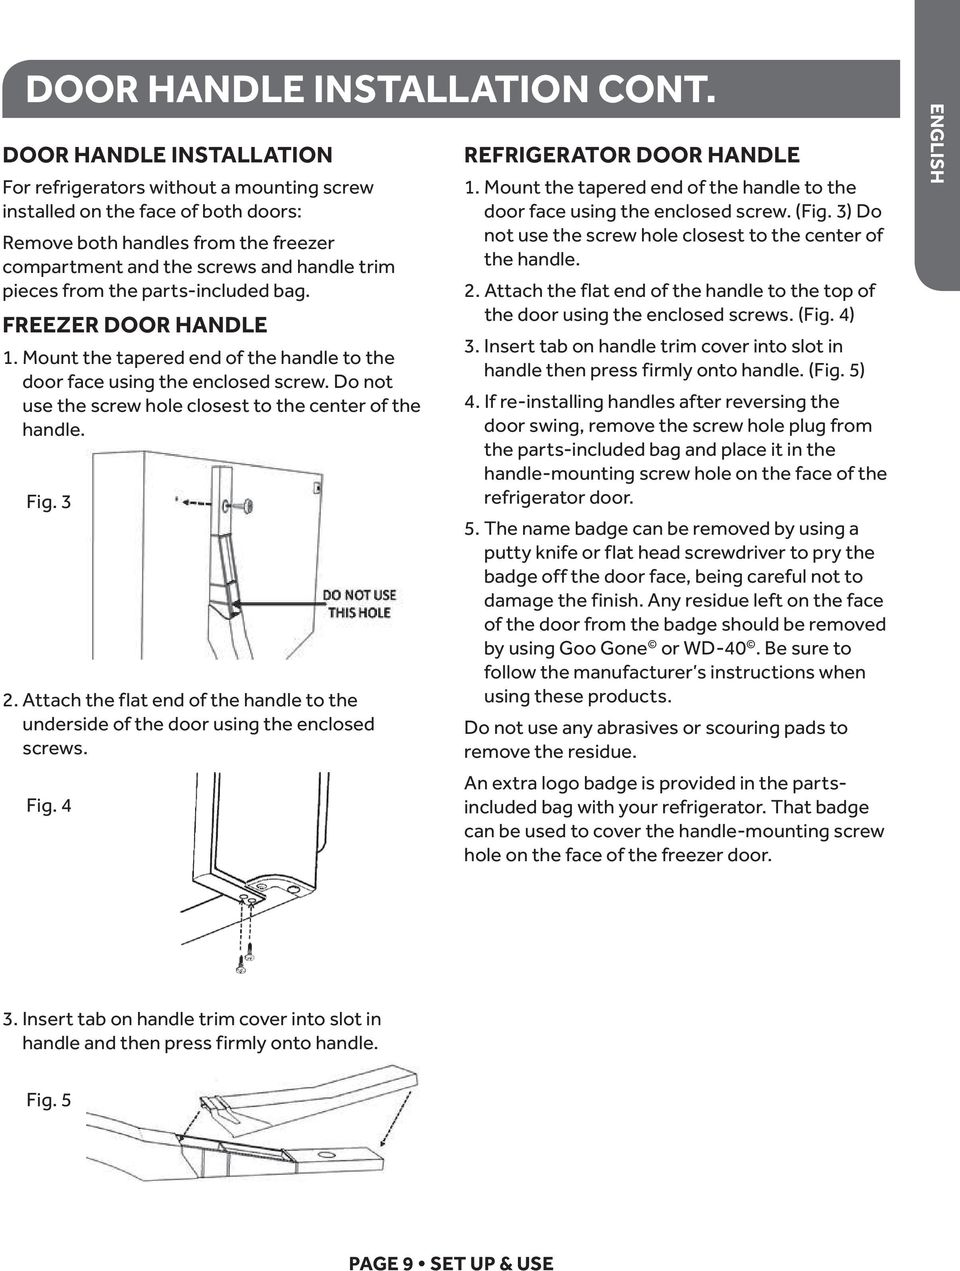 the parts-included bag. FREEZER DOOR HANDLE 1. Mount the tapered end of the handle to the door face using the enclosed screw. Do not use the screw hole closest to the center of the handle. Fig. 3 2.